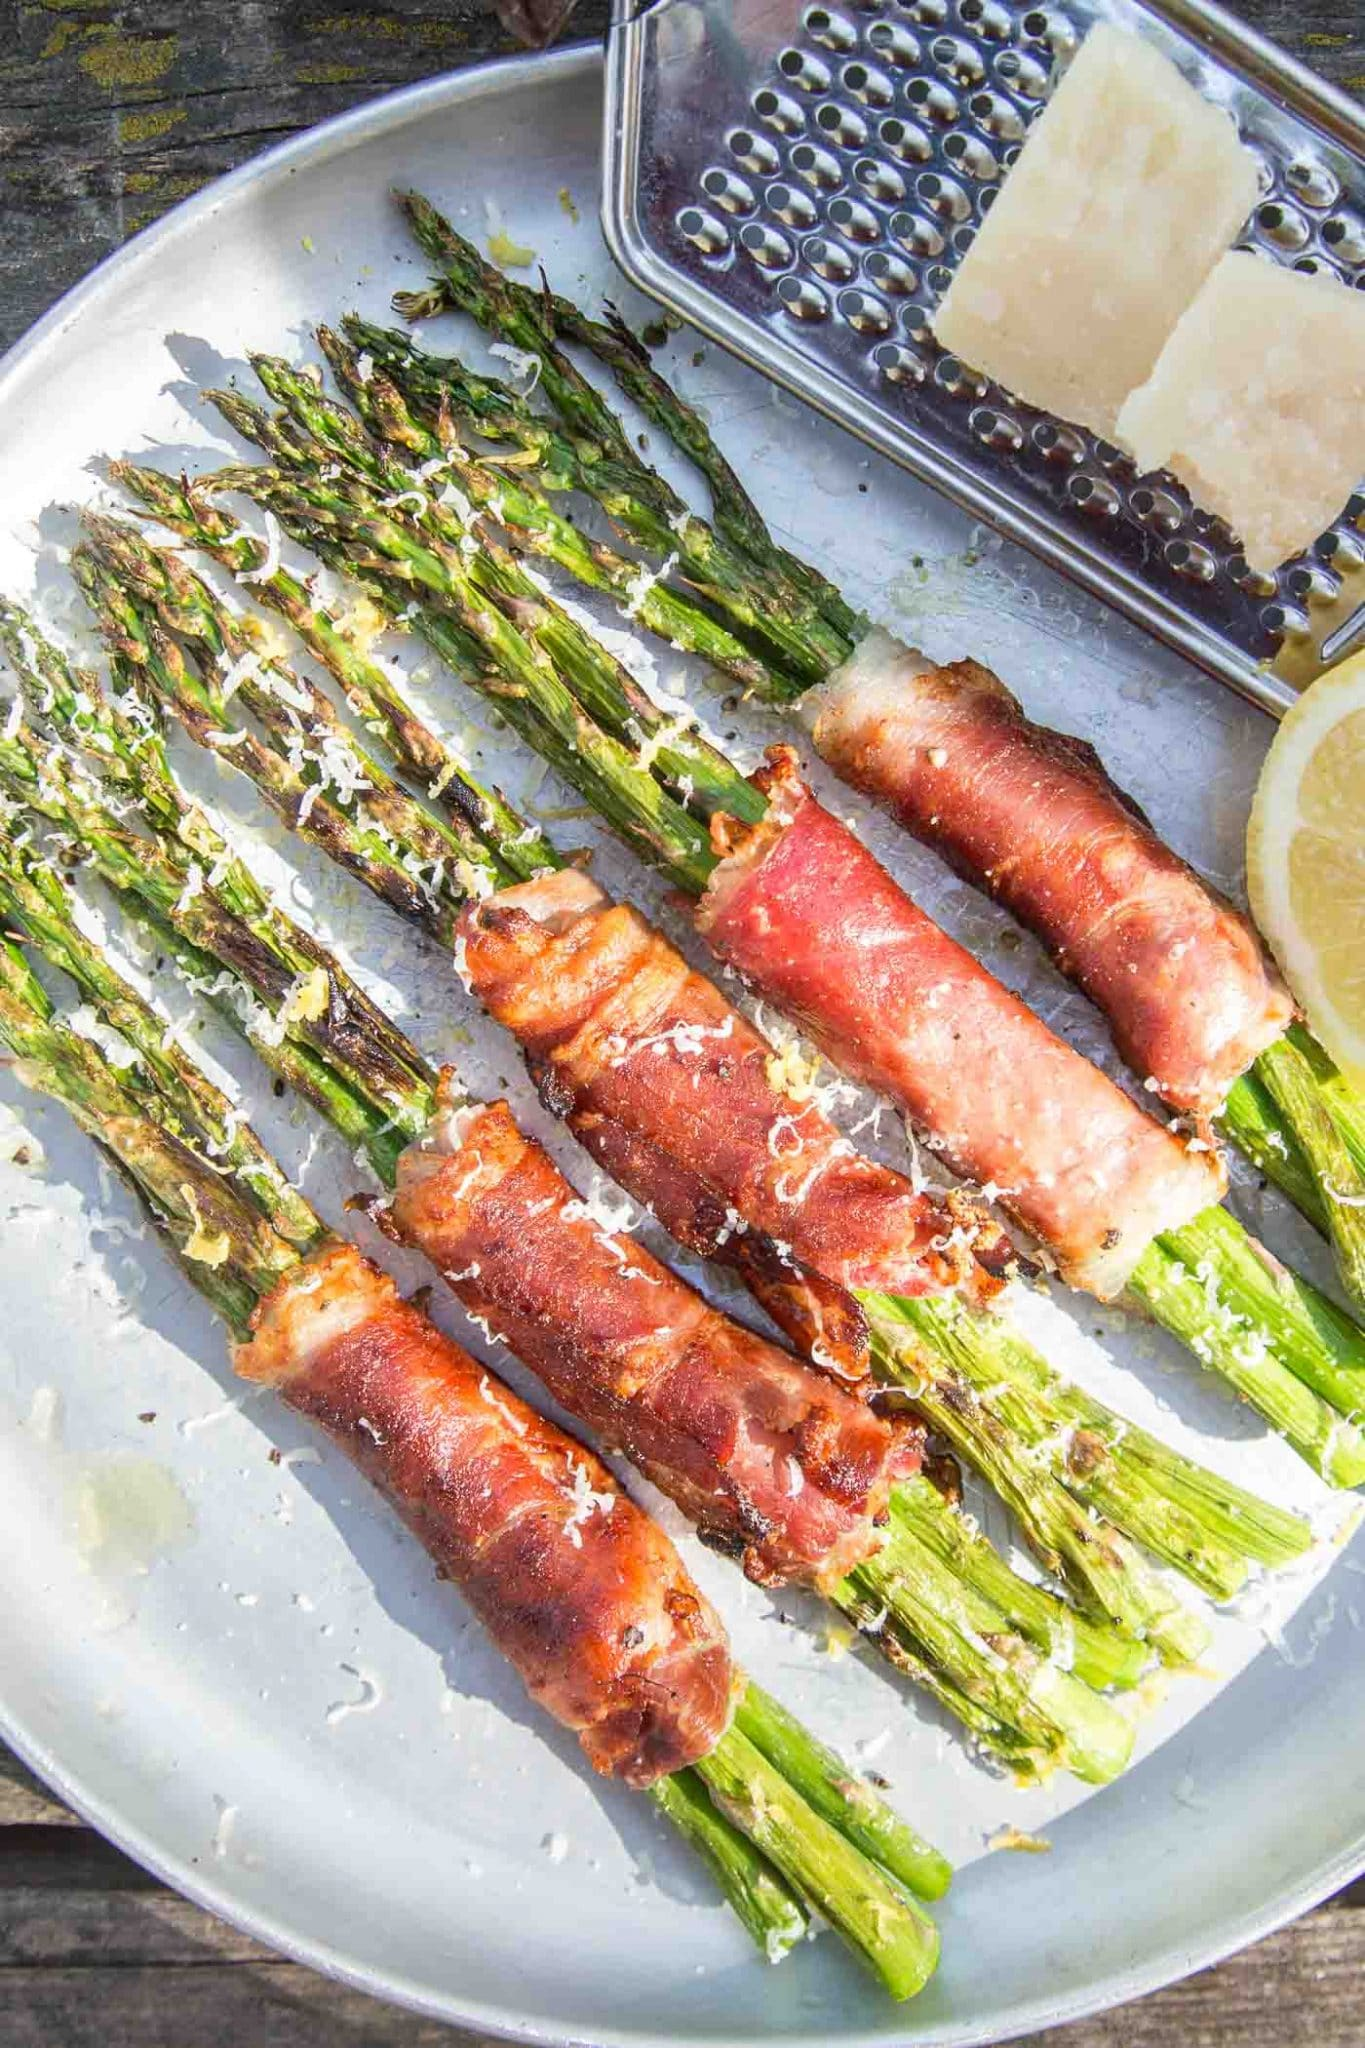 Five prosciutto wrapped asparagus bundles on a plate